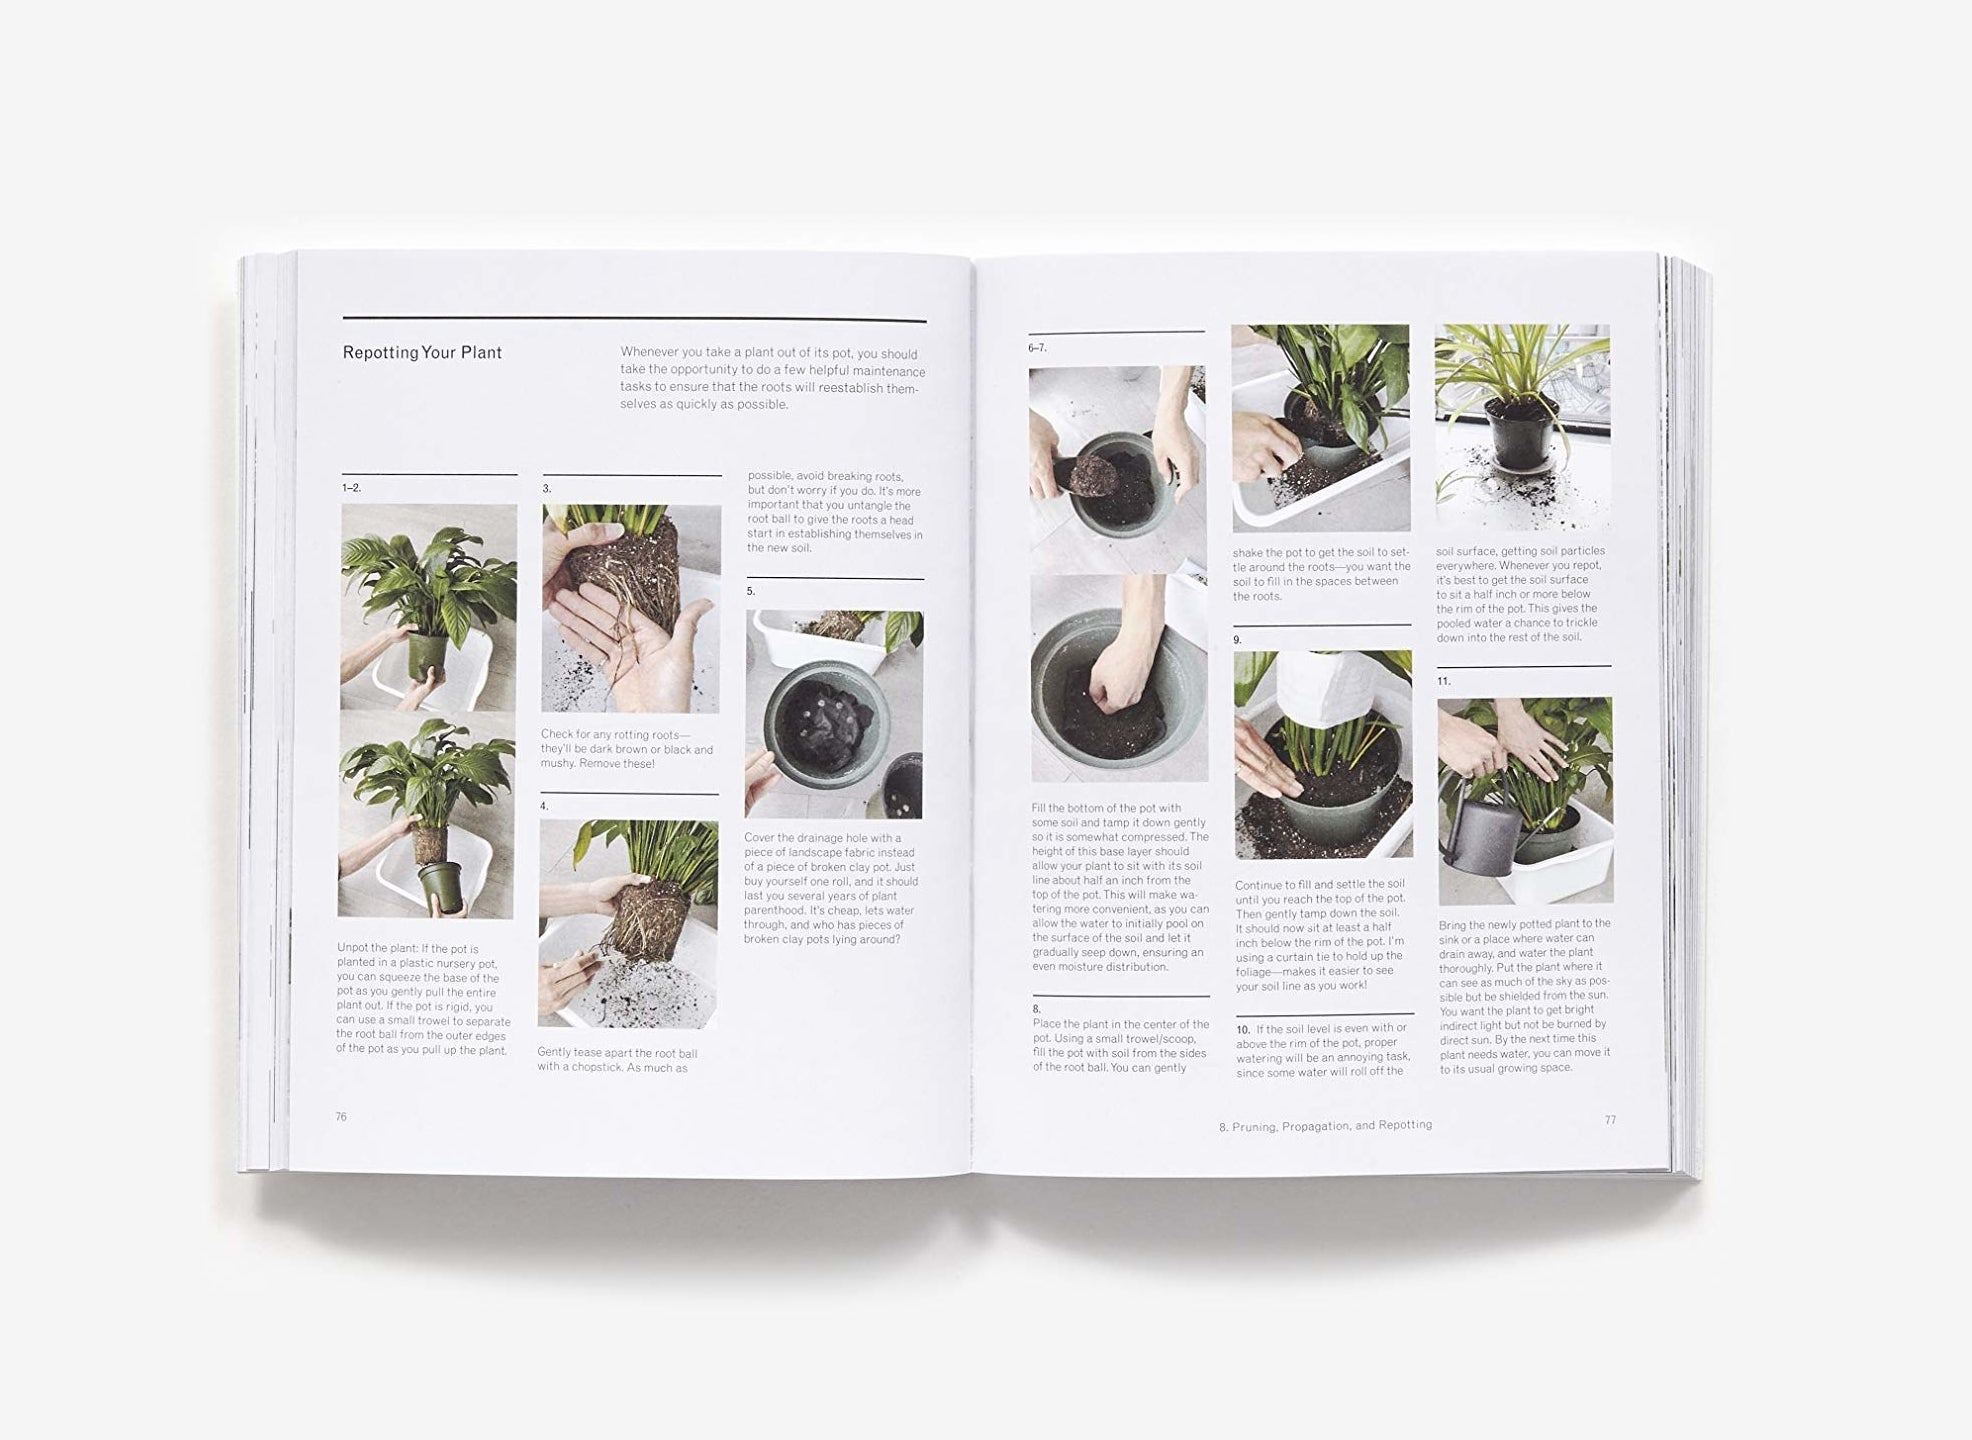 A page inside the book about potting plants